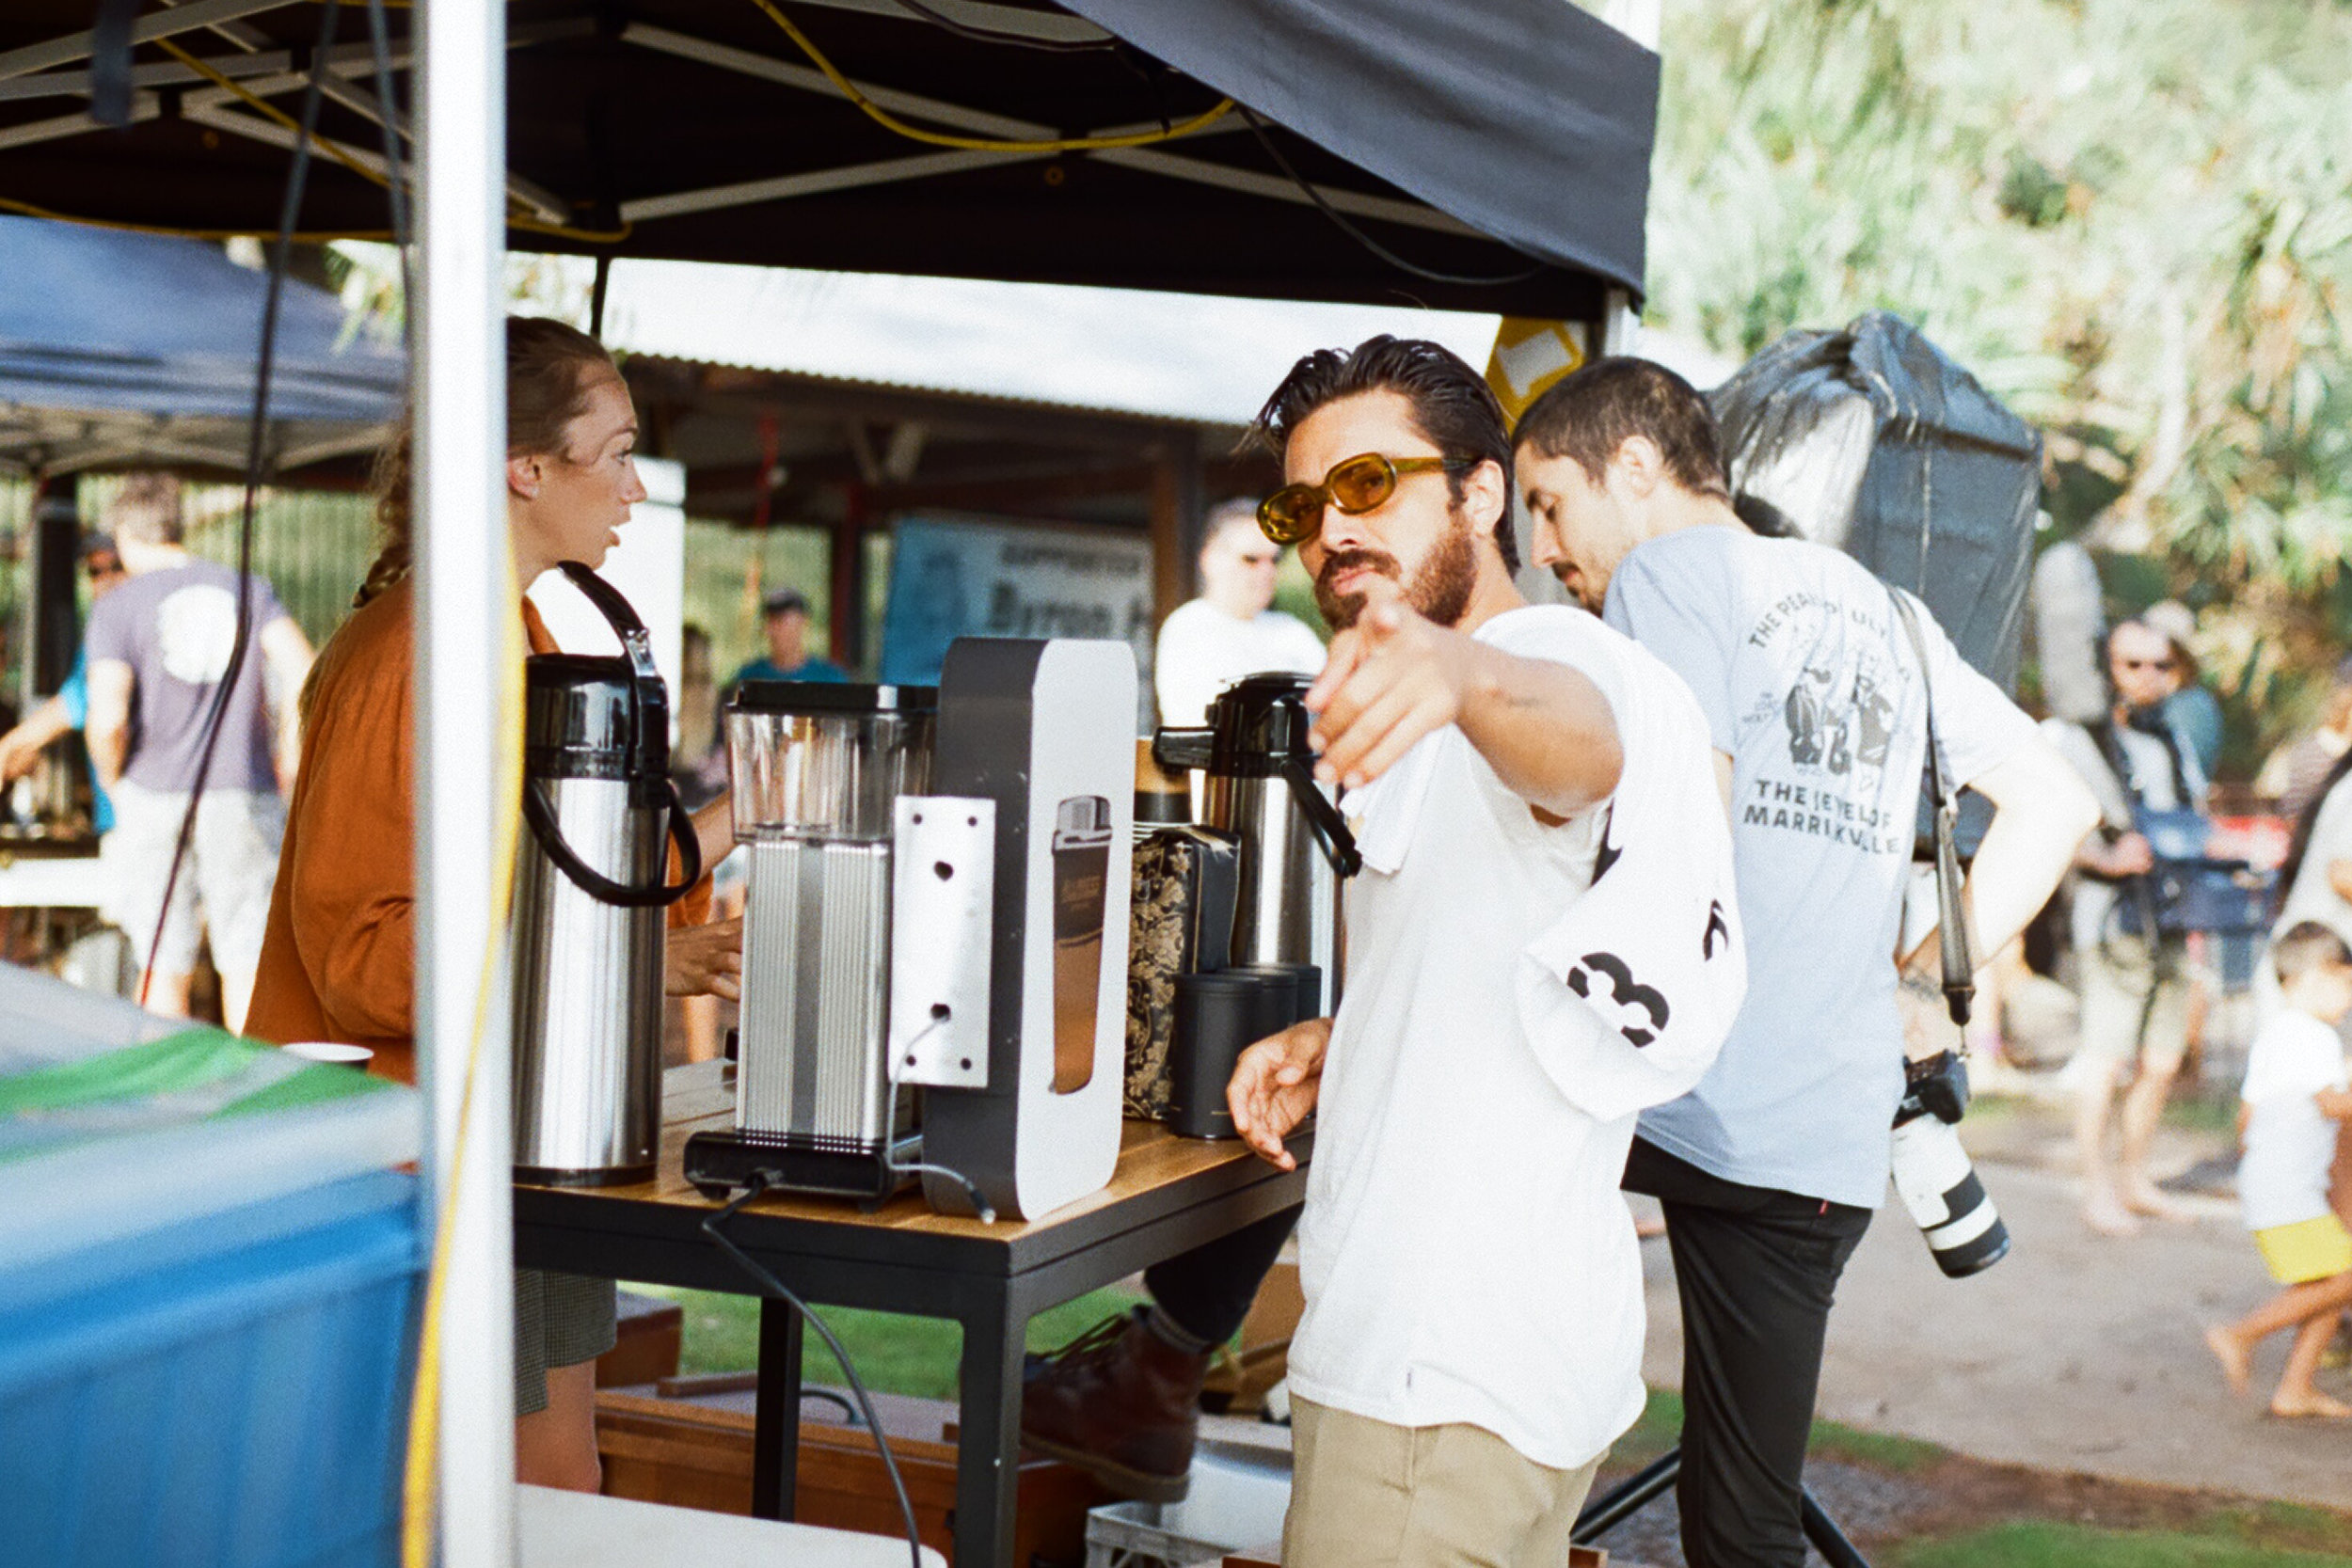 Allpress Coffee with Jared Mell at the Freestyle & Stoke Surf Sessions. Da best beans everr! Photo by @dreamingcaterpillar @bayou_film @mctavishsurf